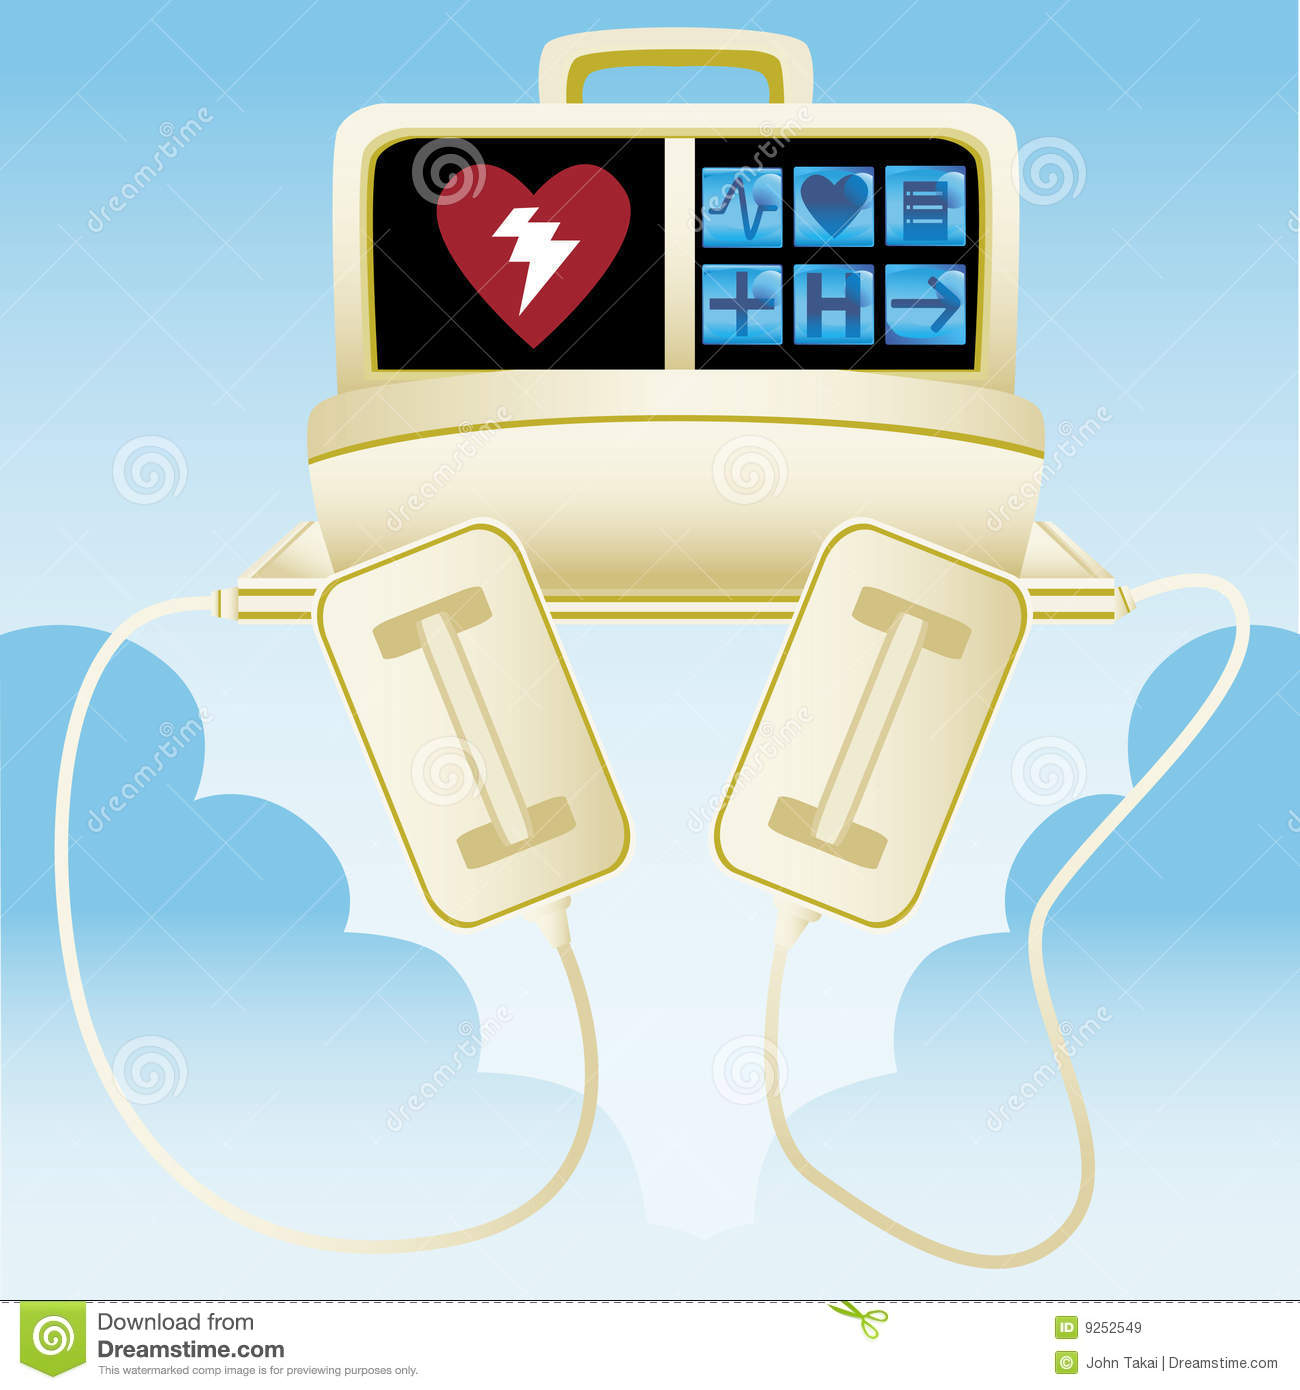 Heart Defibrillator Royalty Free Stock Images - Image: 9252549